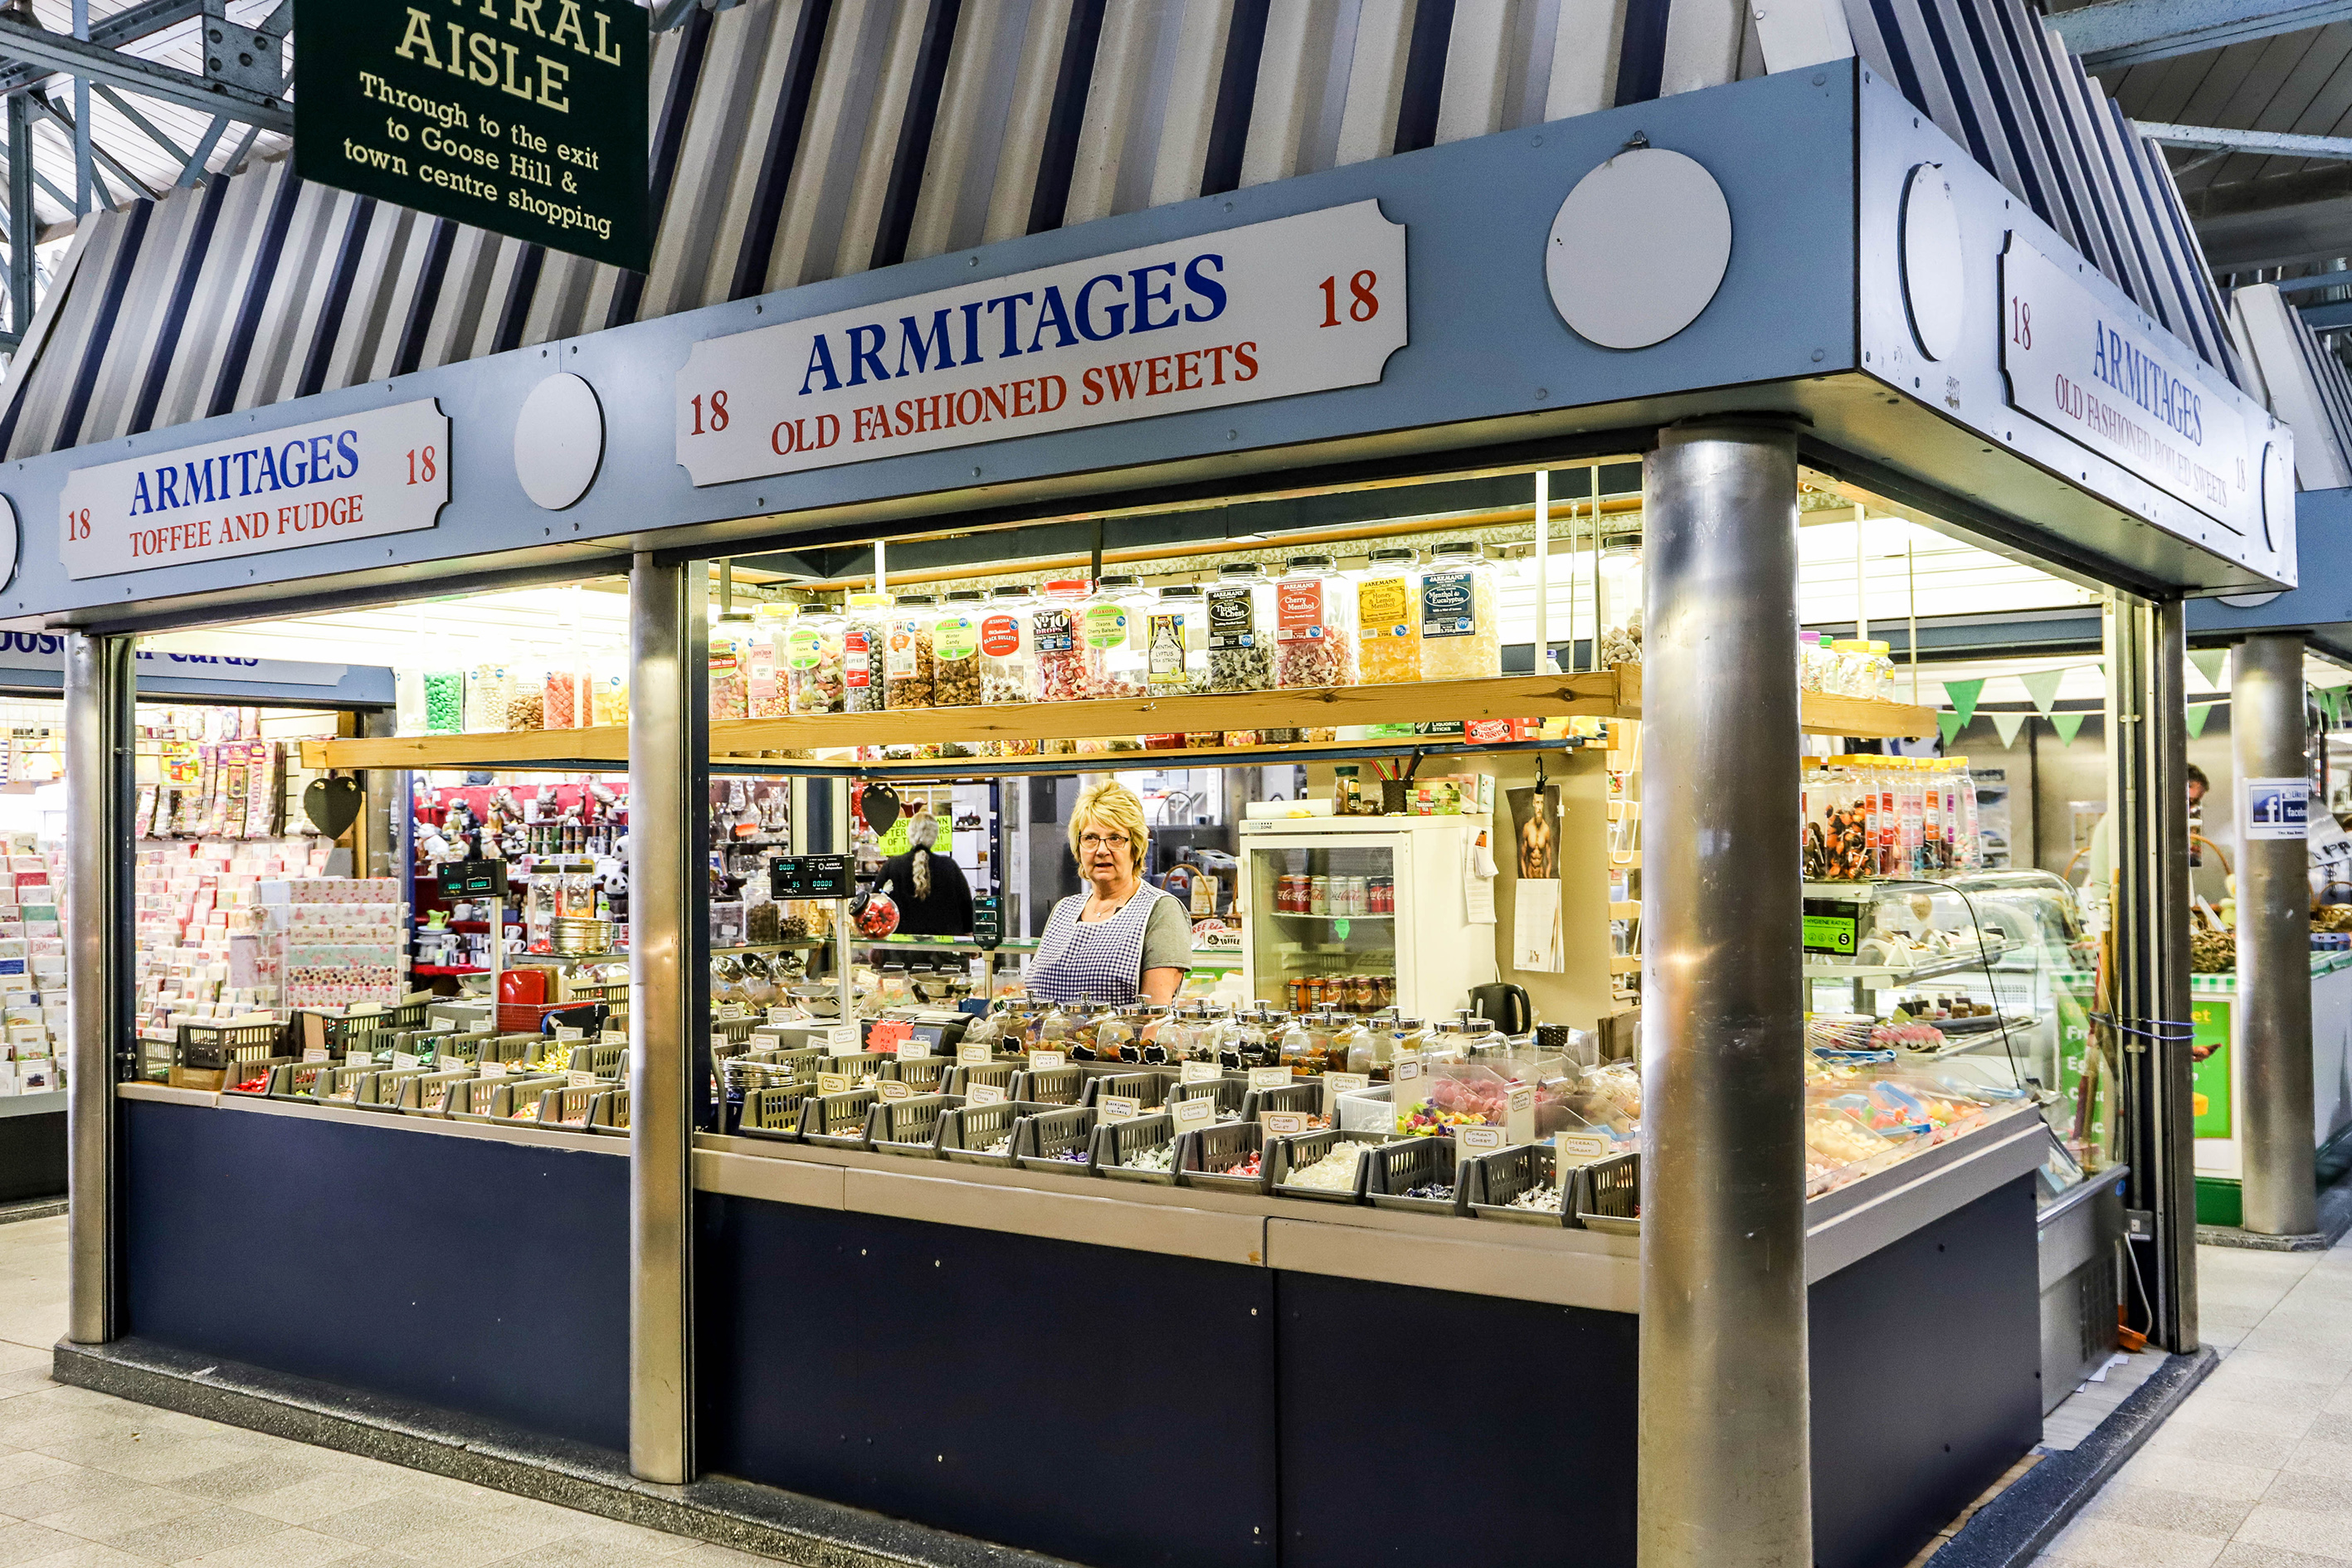 Armitage sweets